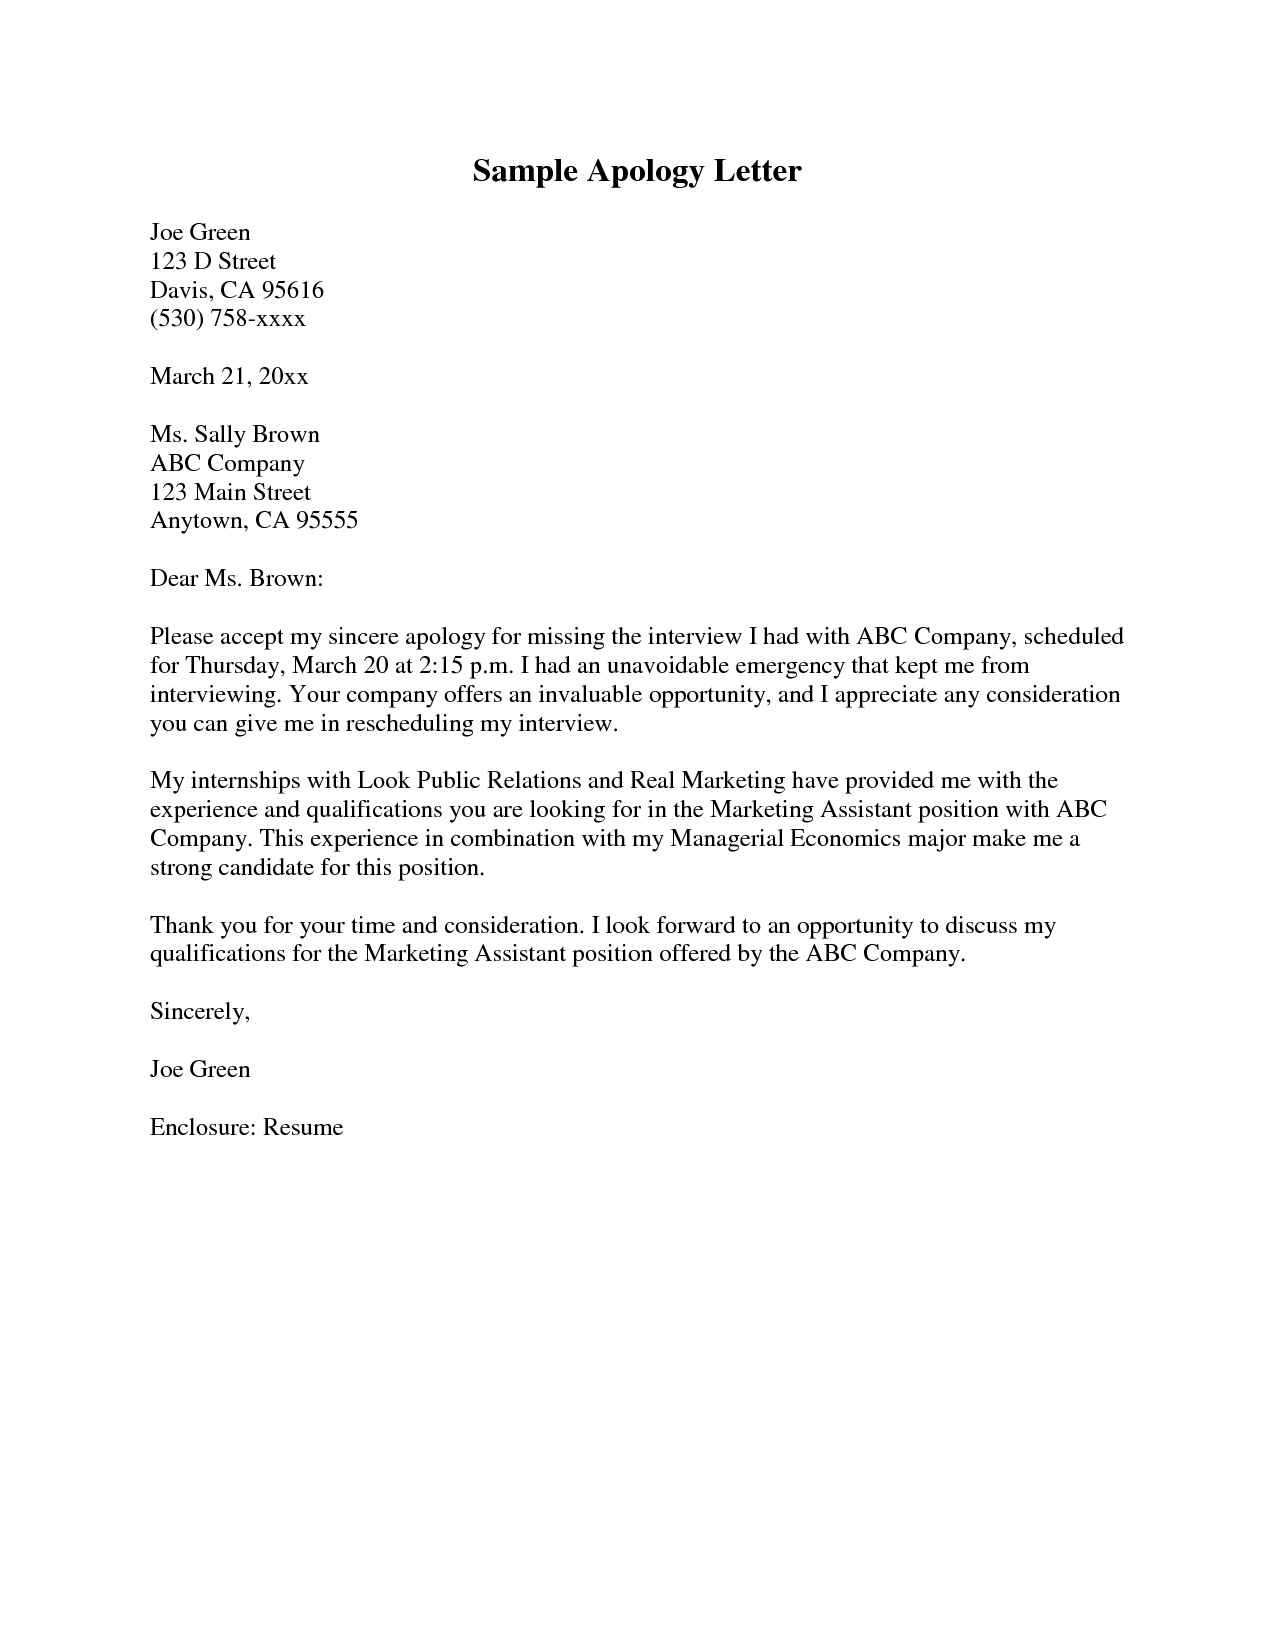 How To Write An Apology Letter To A Teacher Sampleletter Of Apology Business Letter Sample